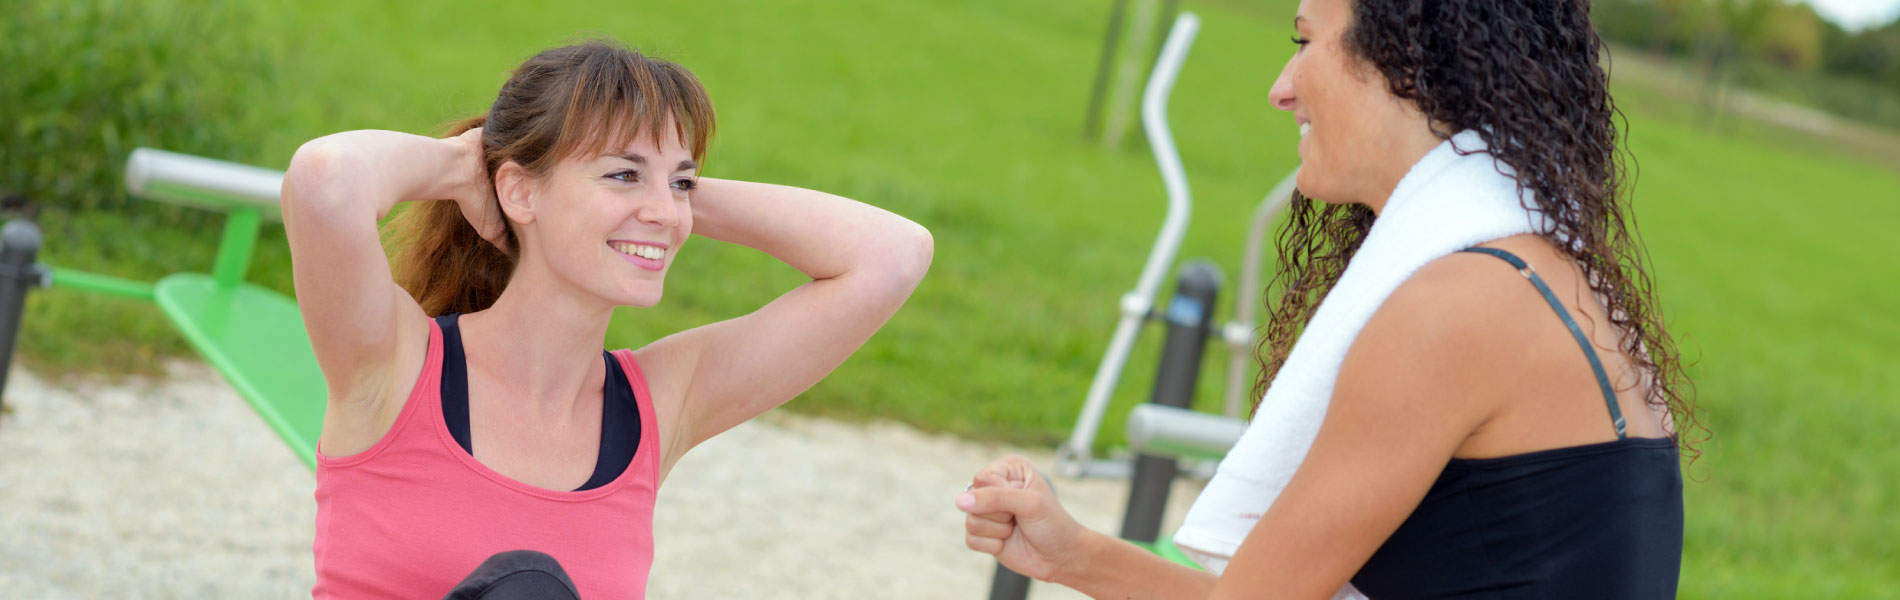 Promoting_Active_Living_at_your_Parks_and-Rec_Organization_1900x600.jpg